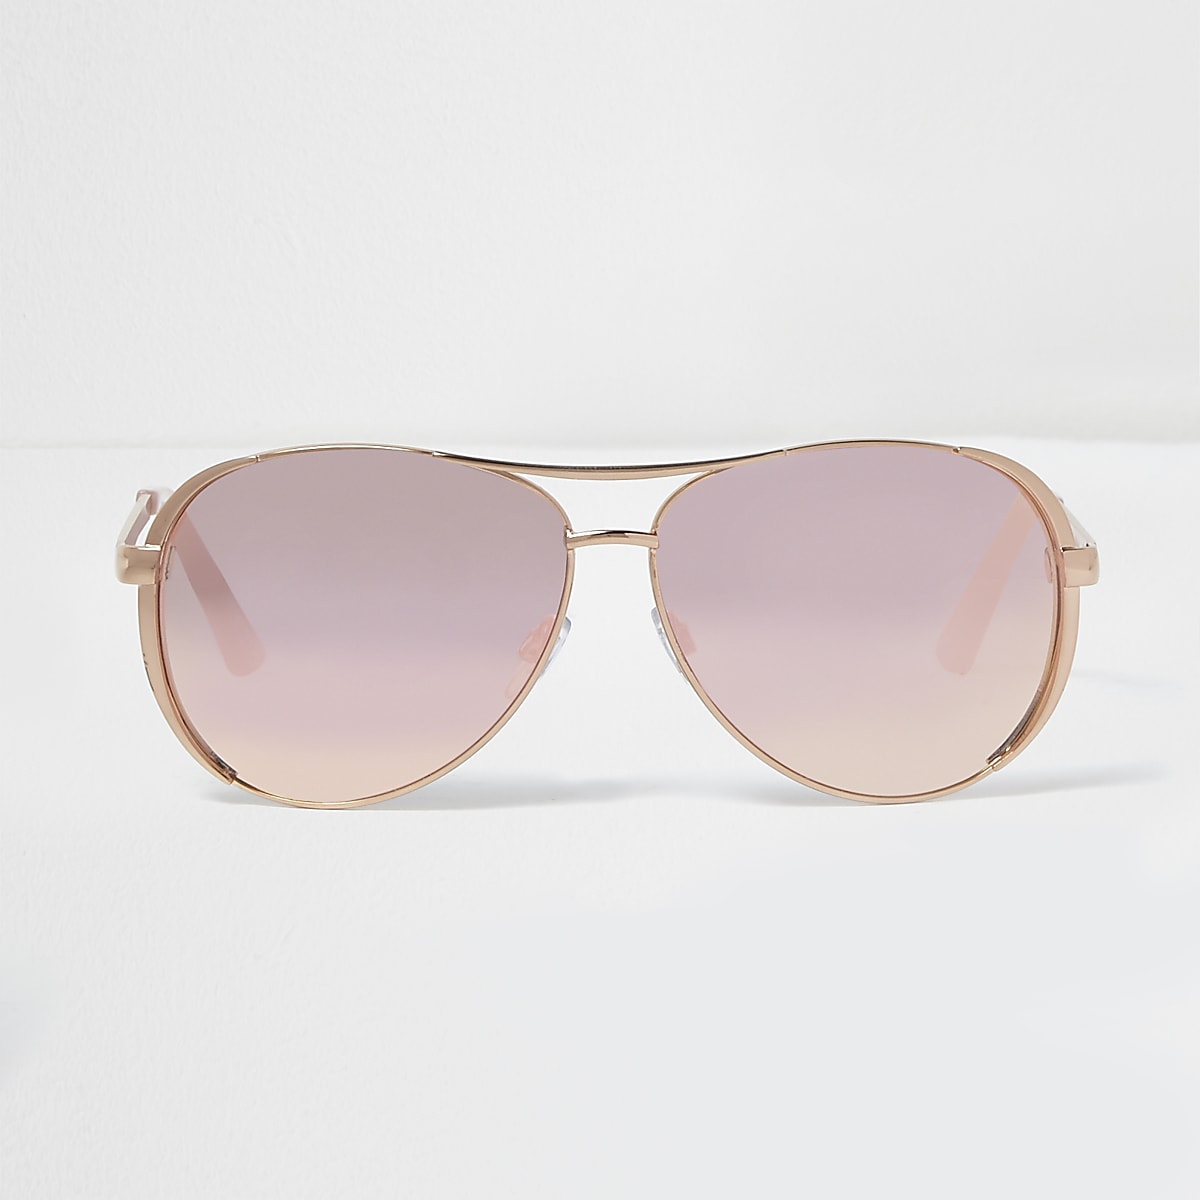 68cc9c73baaf Rose gold tone mirror lens aviator sunglasses - Aviator Sunglasses -  Sunglasses - women